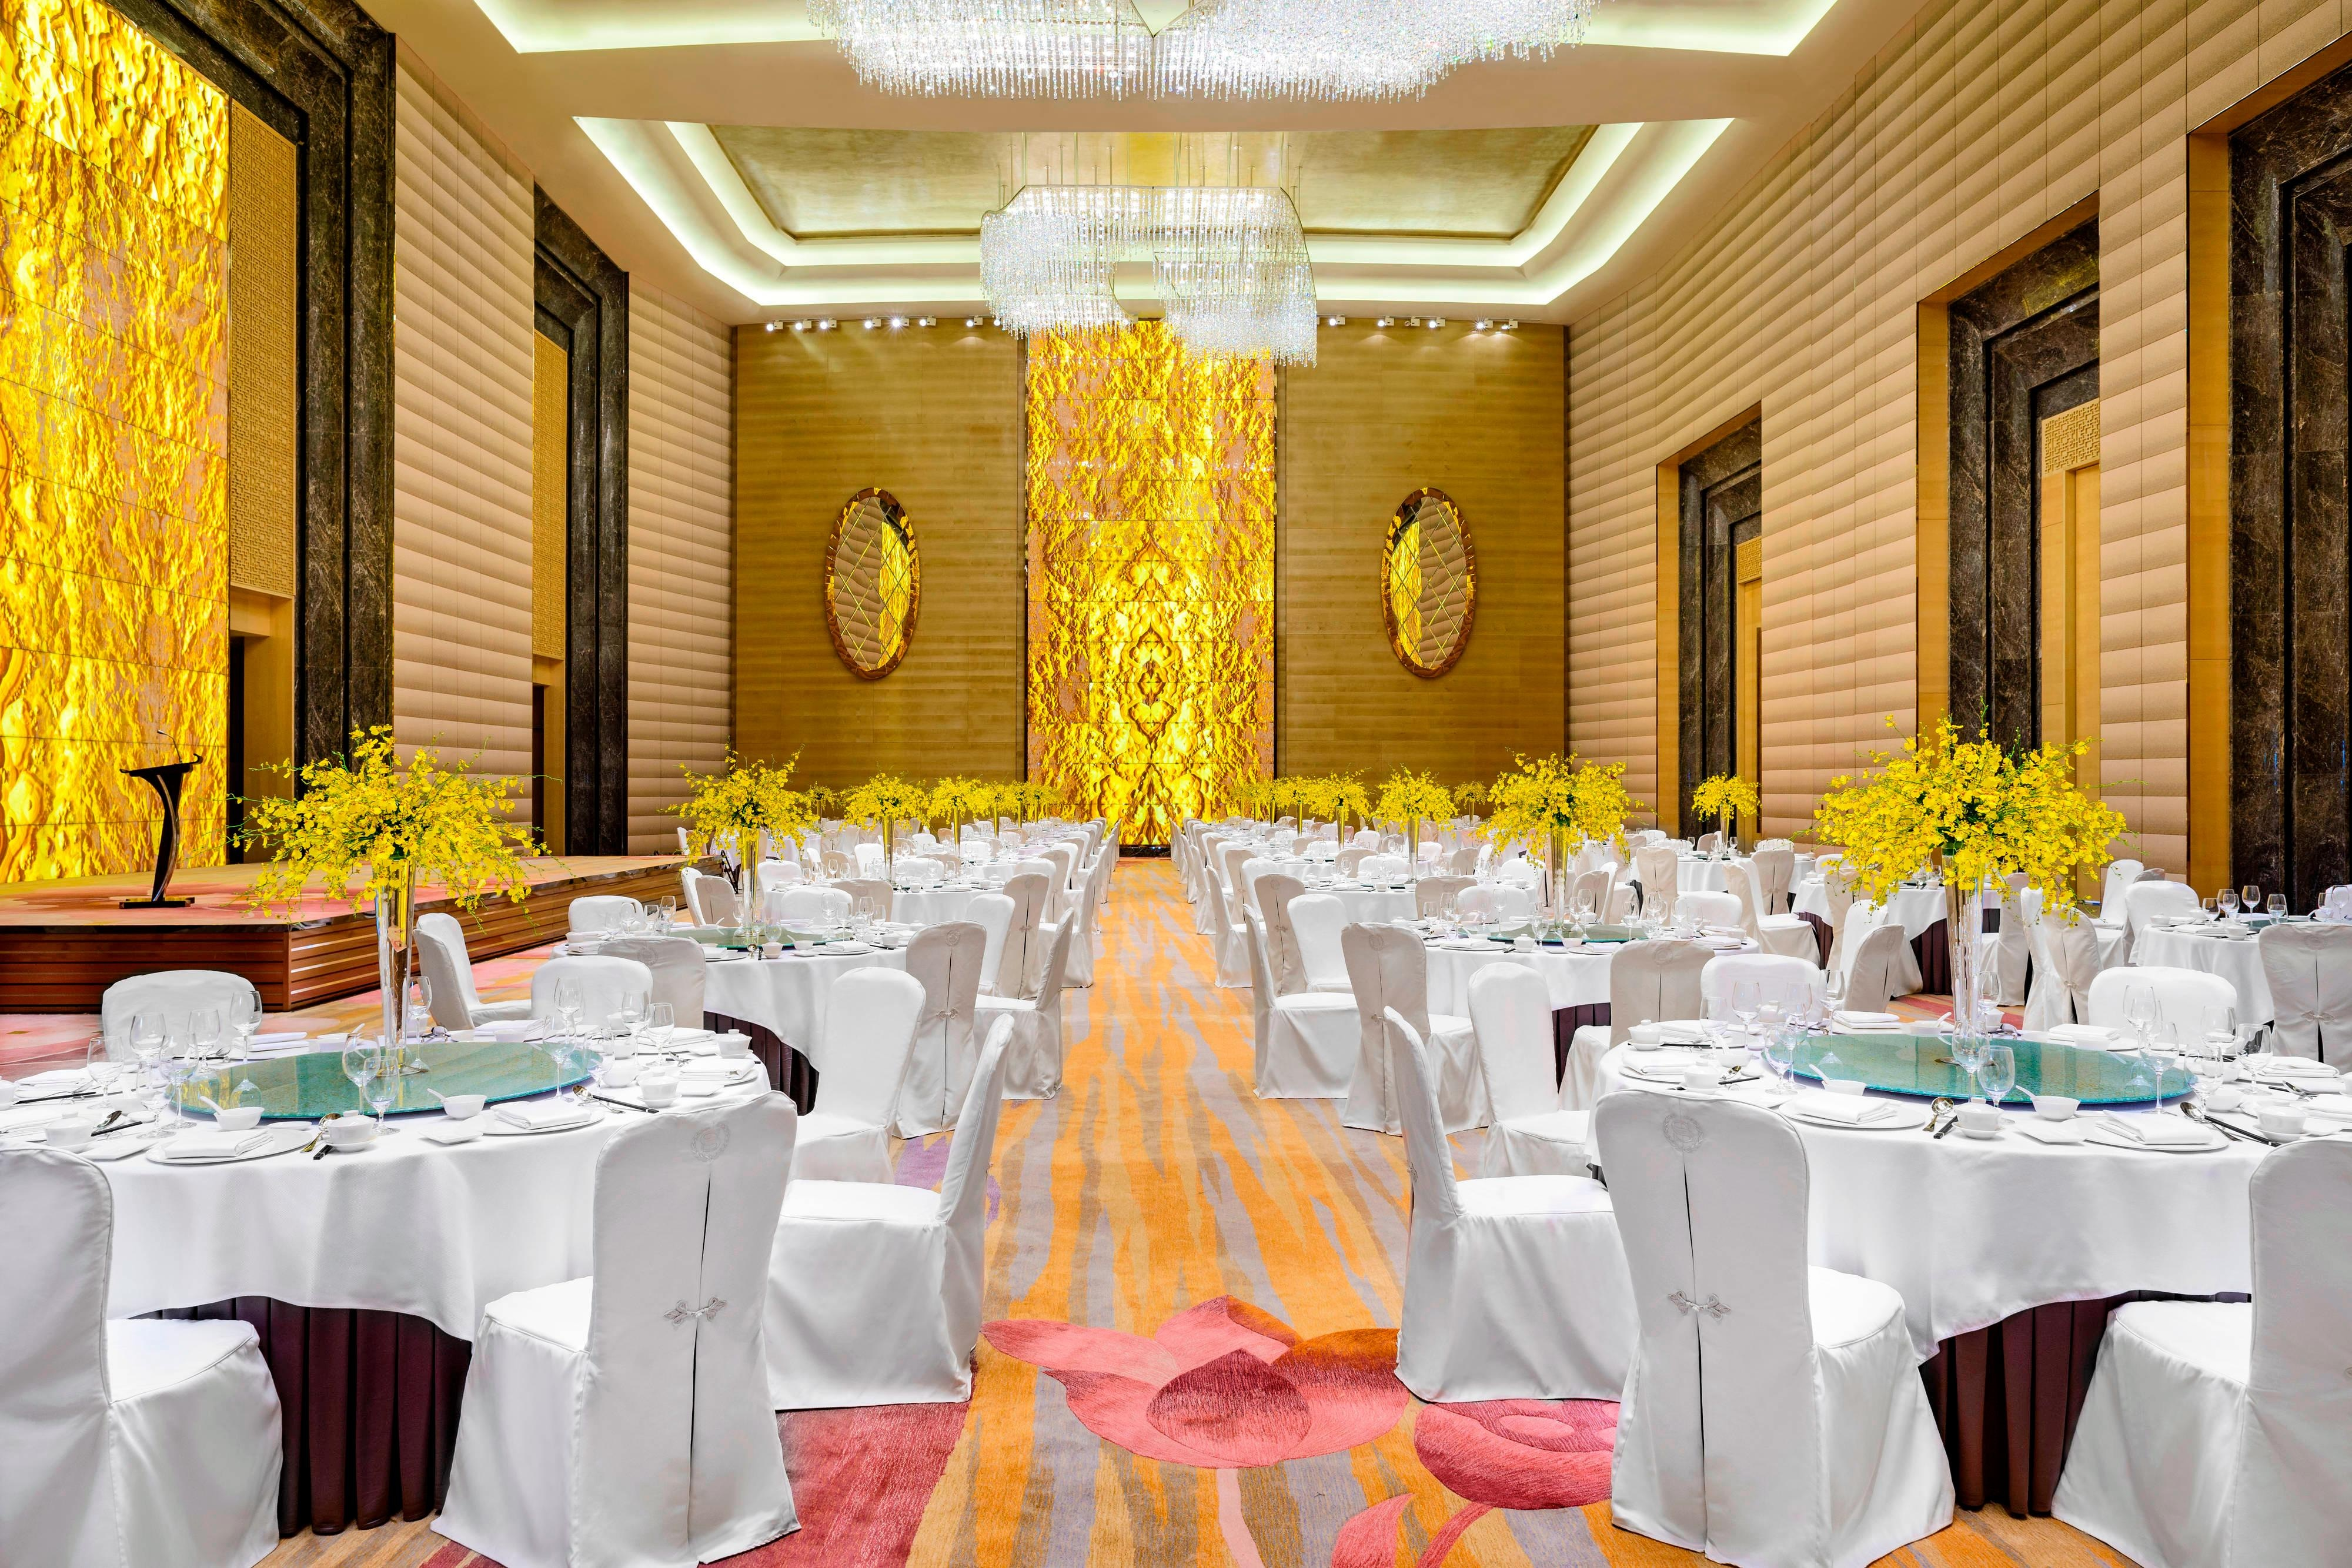 Grand Ballroom with Banquet